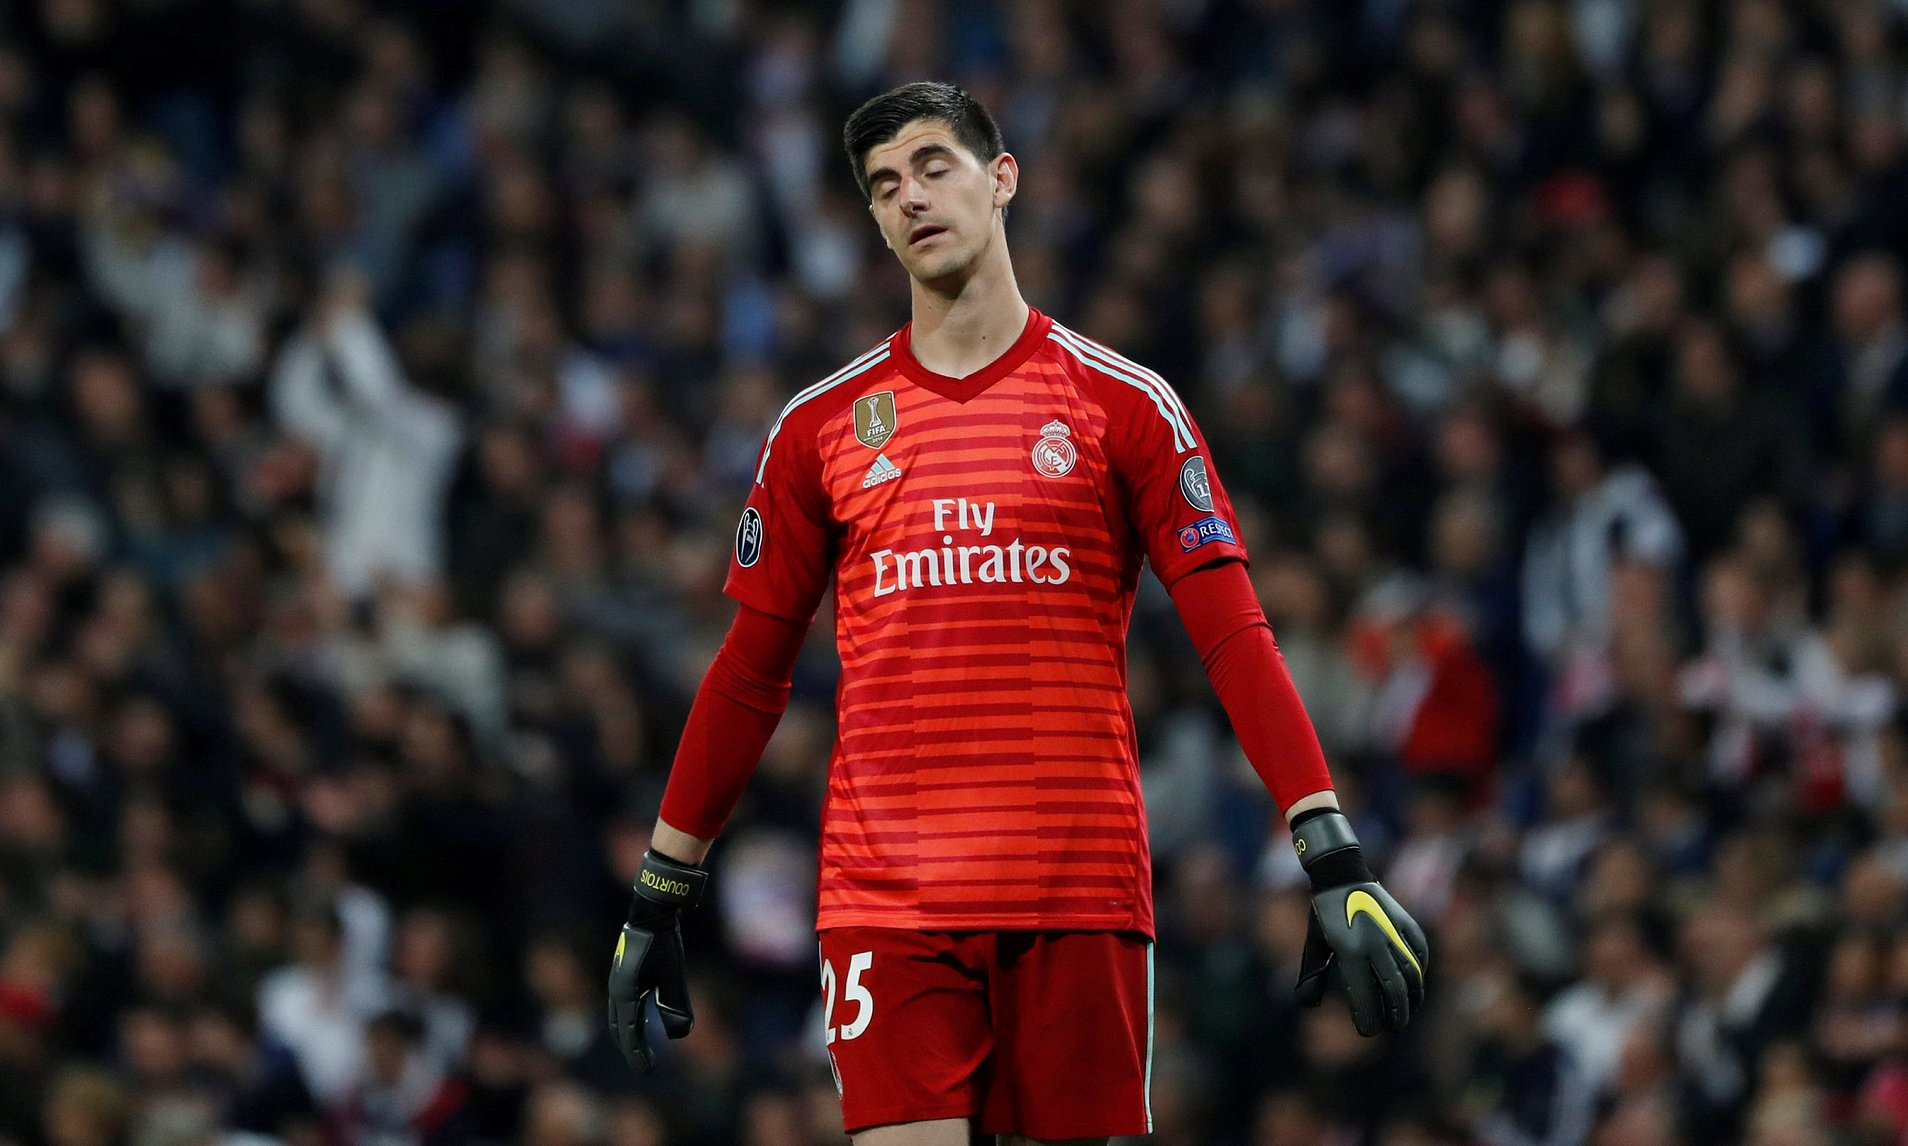 Zidane DROPS Courtois recalls Keylor Navas to Madrid's first XI